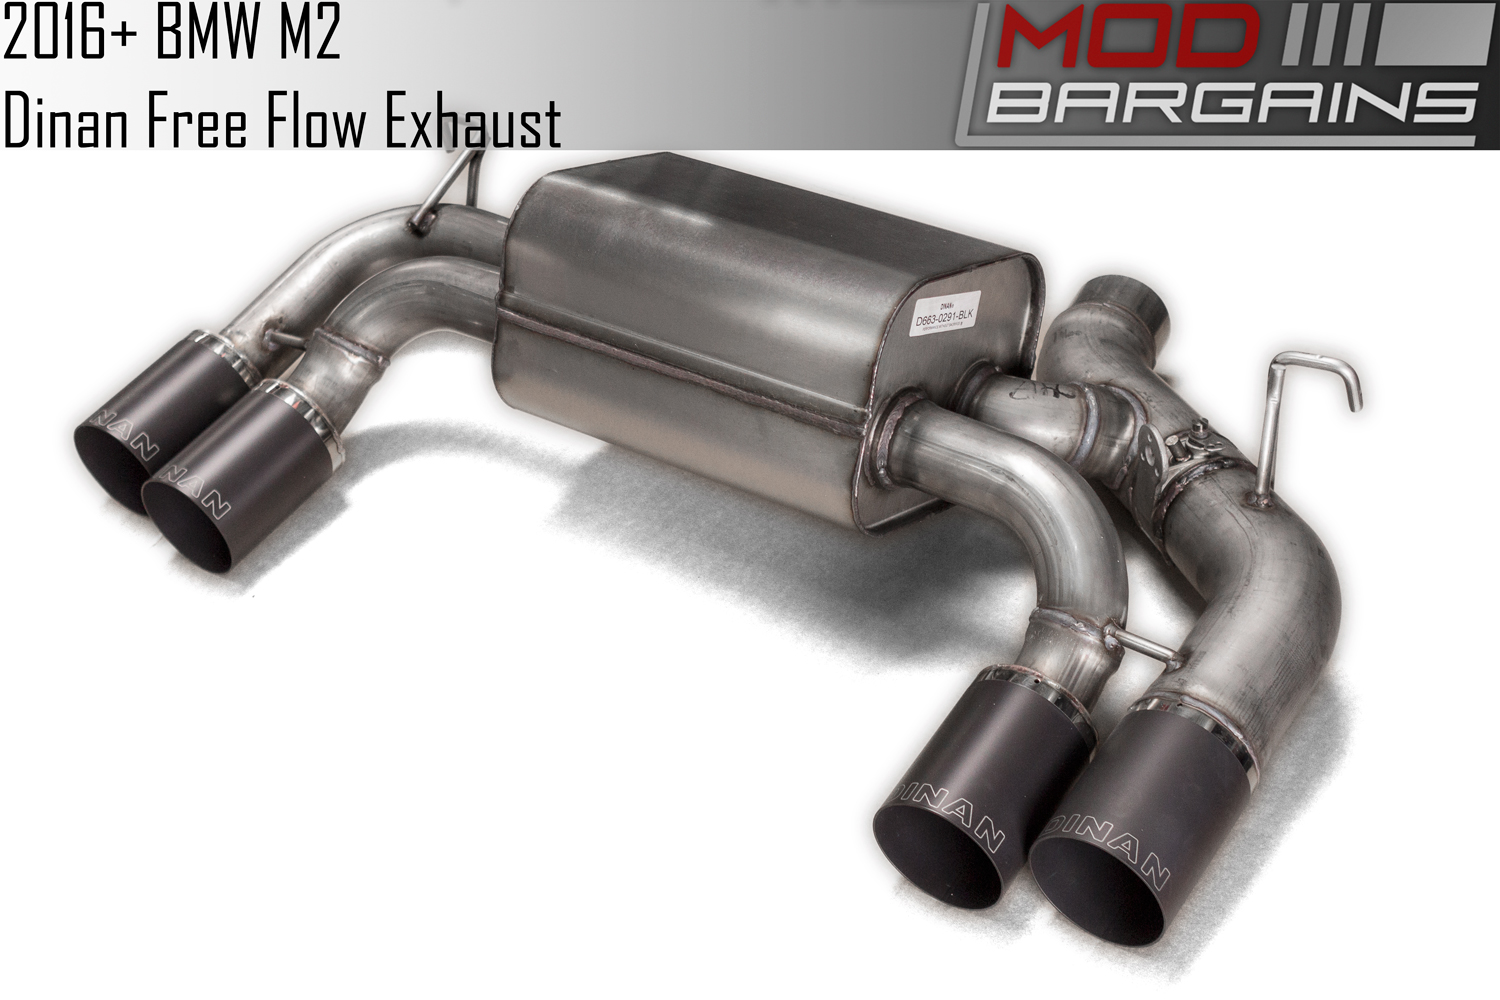 Dinan Free Flow Stainless Exhaust with Black Tips